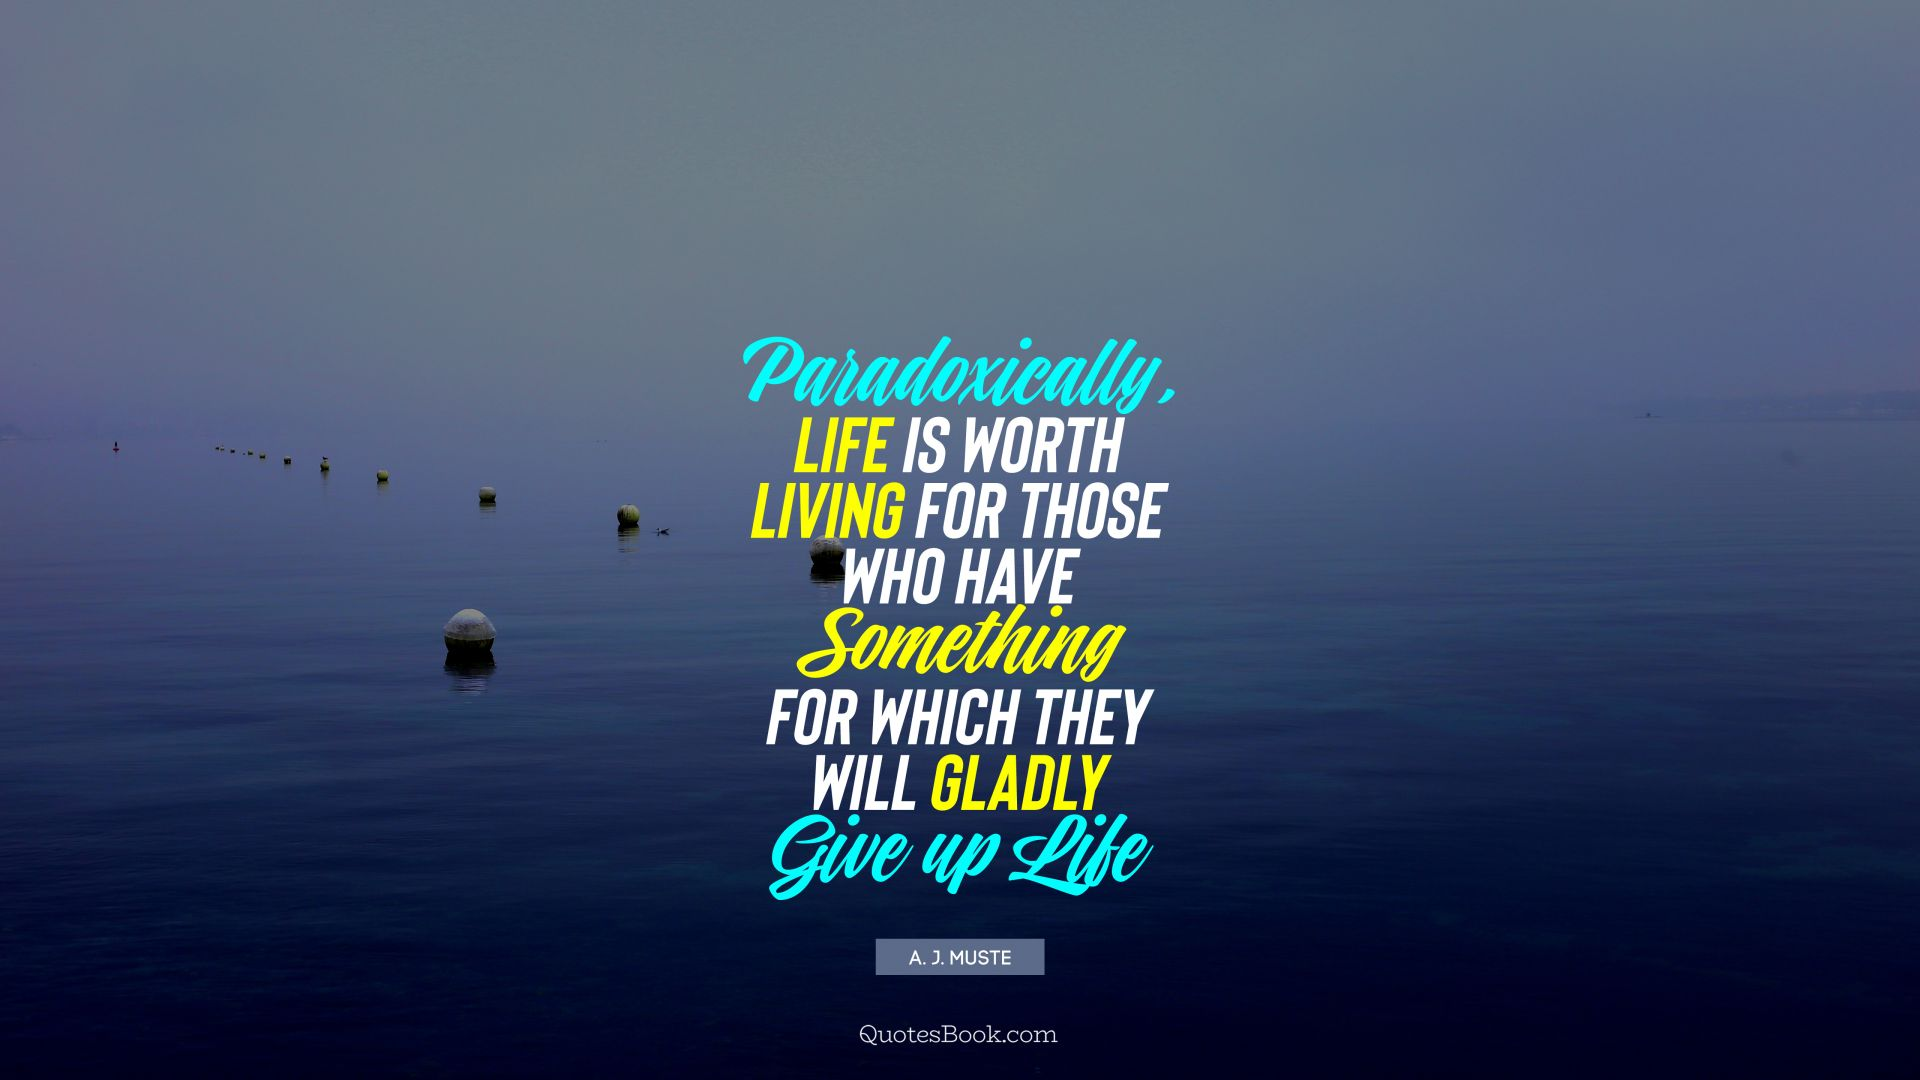 Paradoxically, life is worth living for those who have something for which they will gladly give up life. - Quote by A. J. Muste